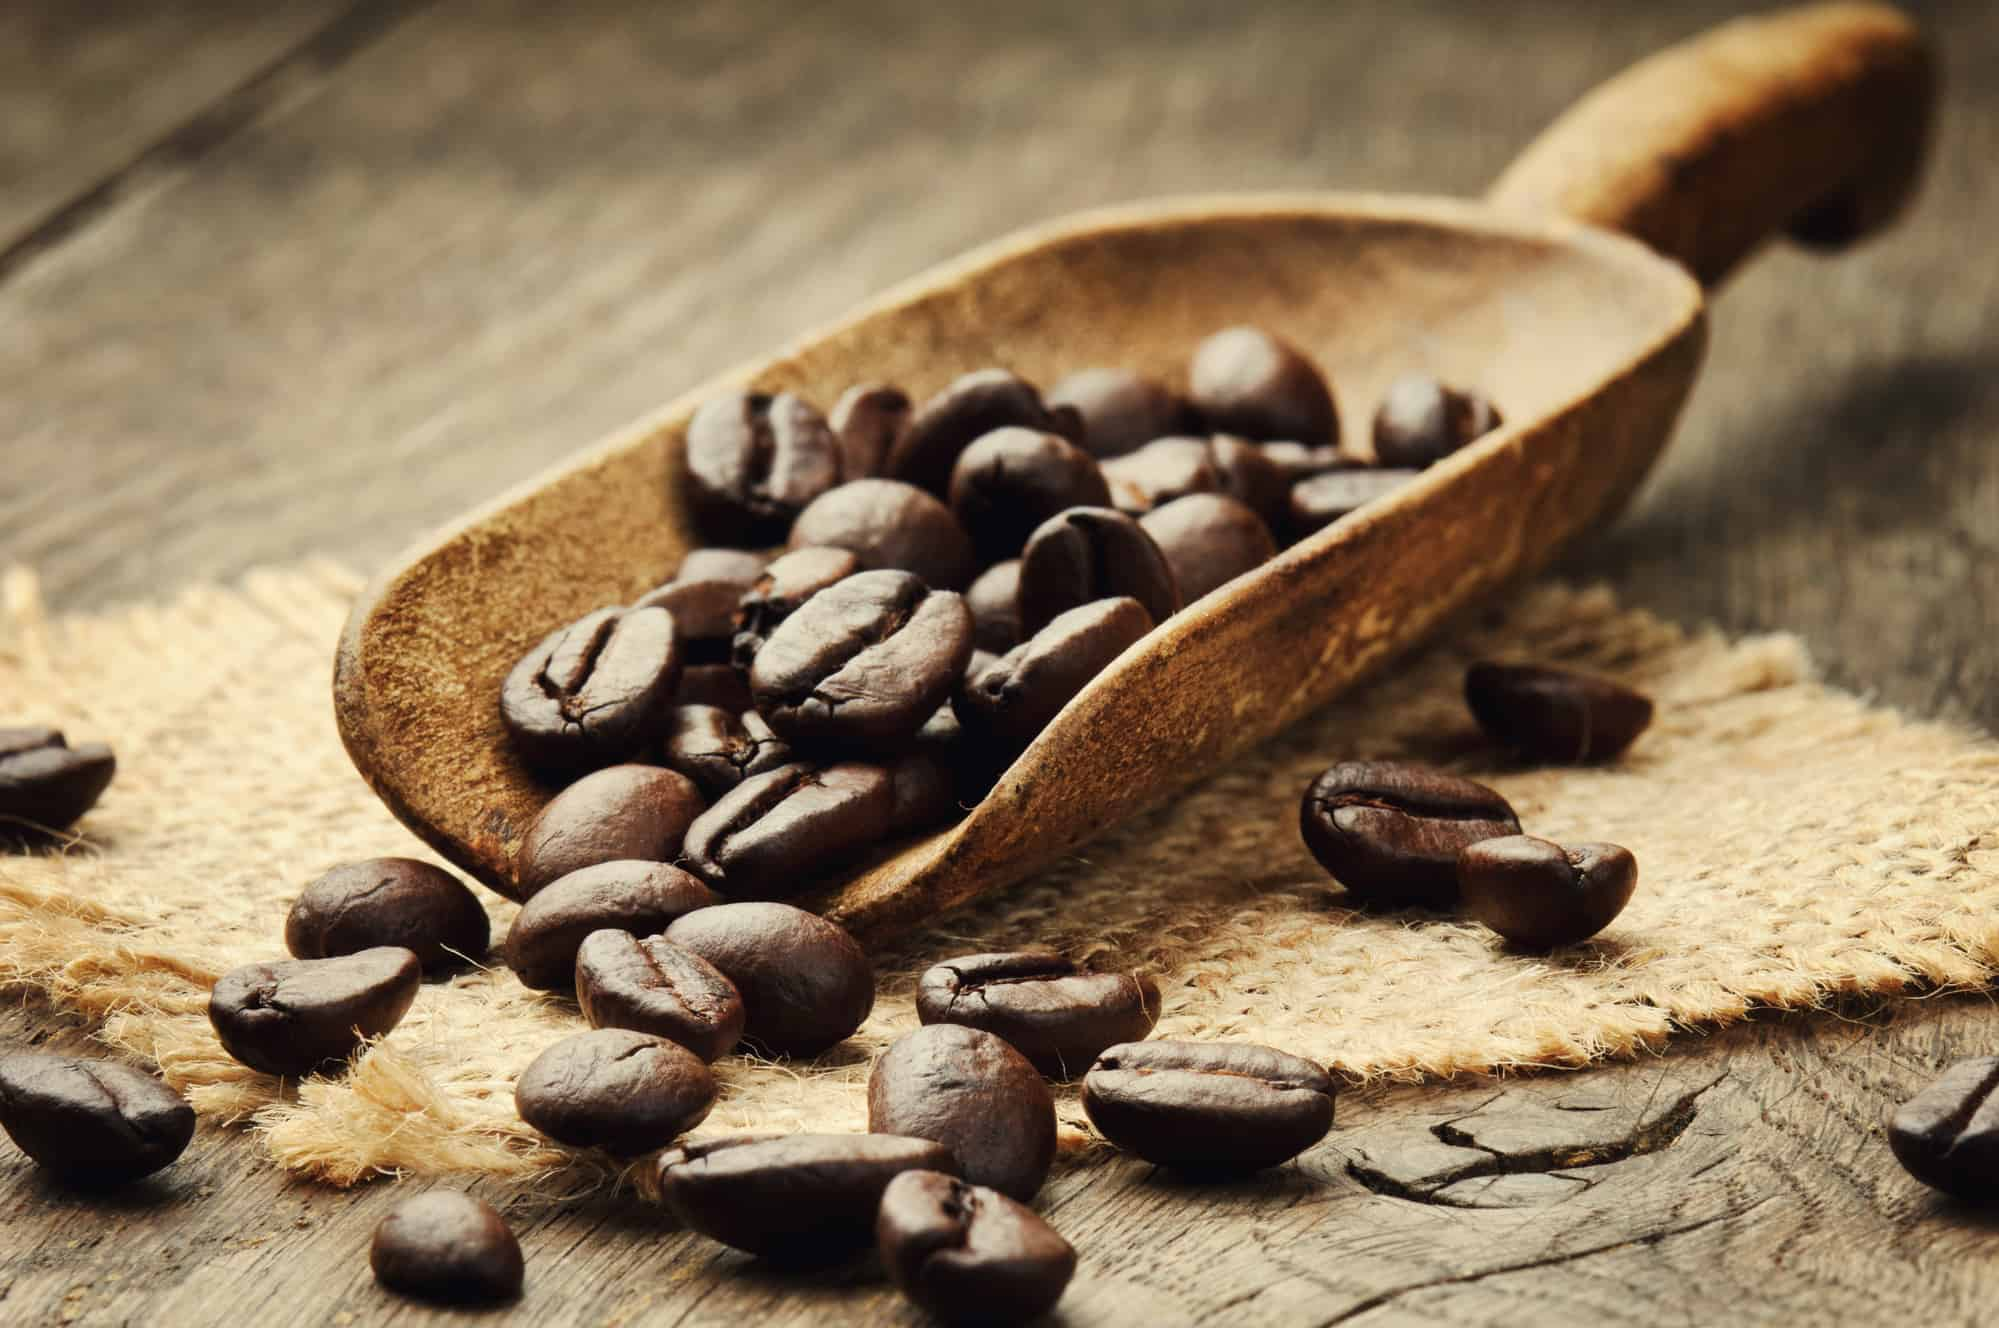 Coffee beans in an old wooden scoop